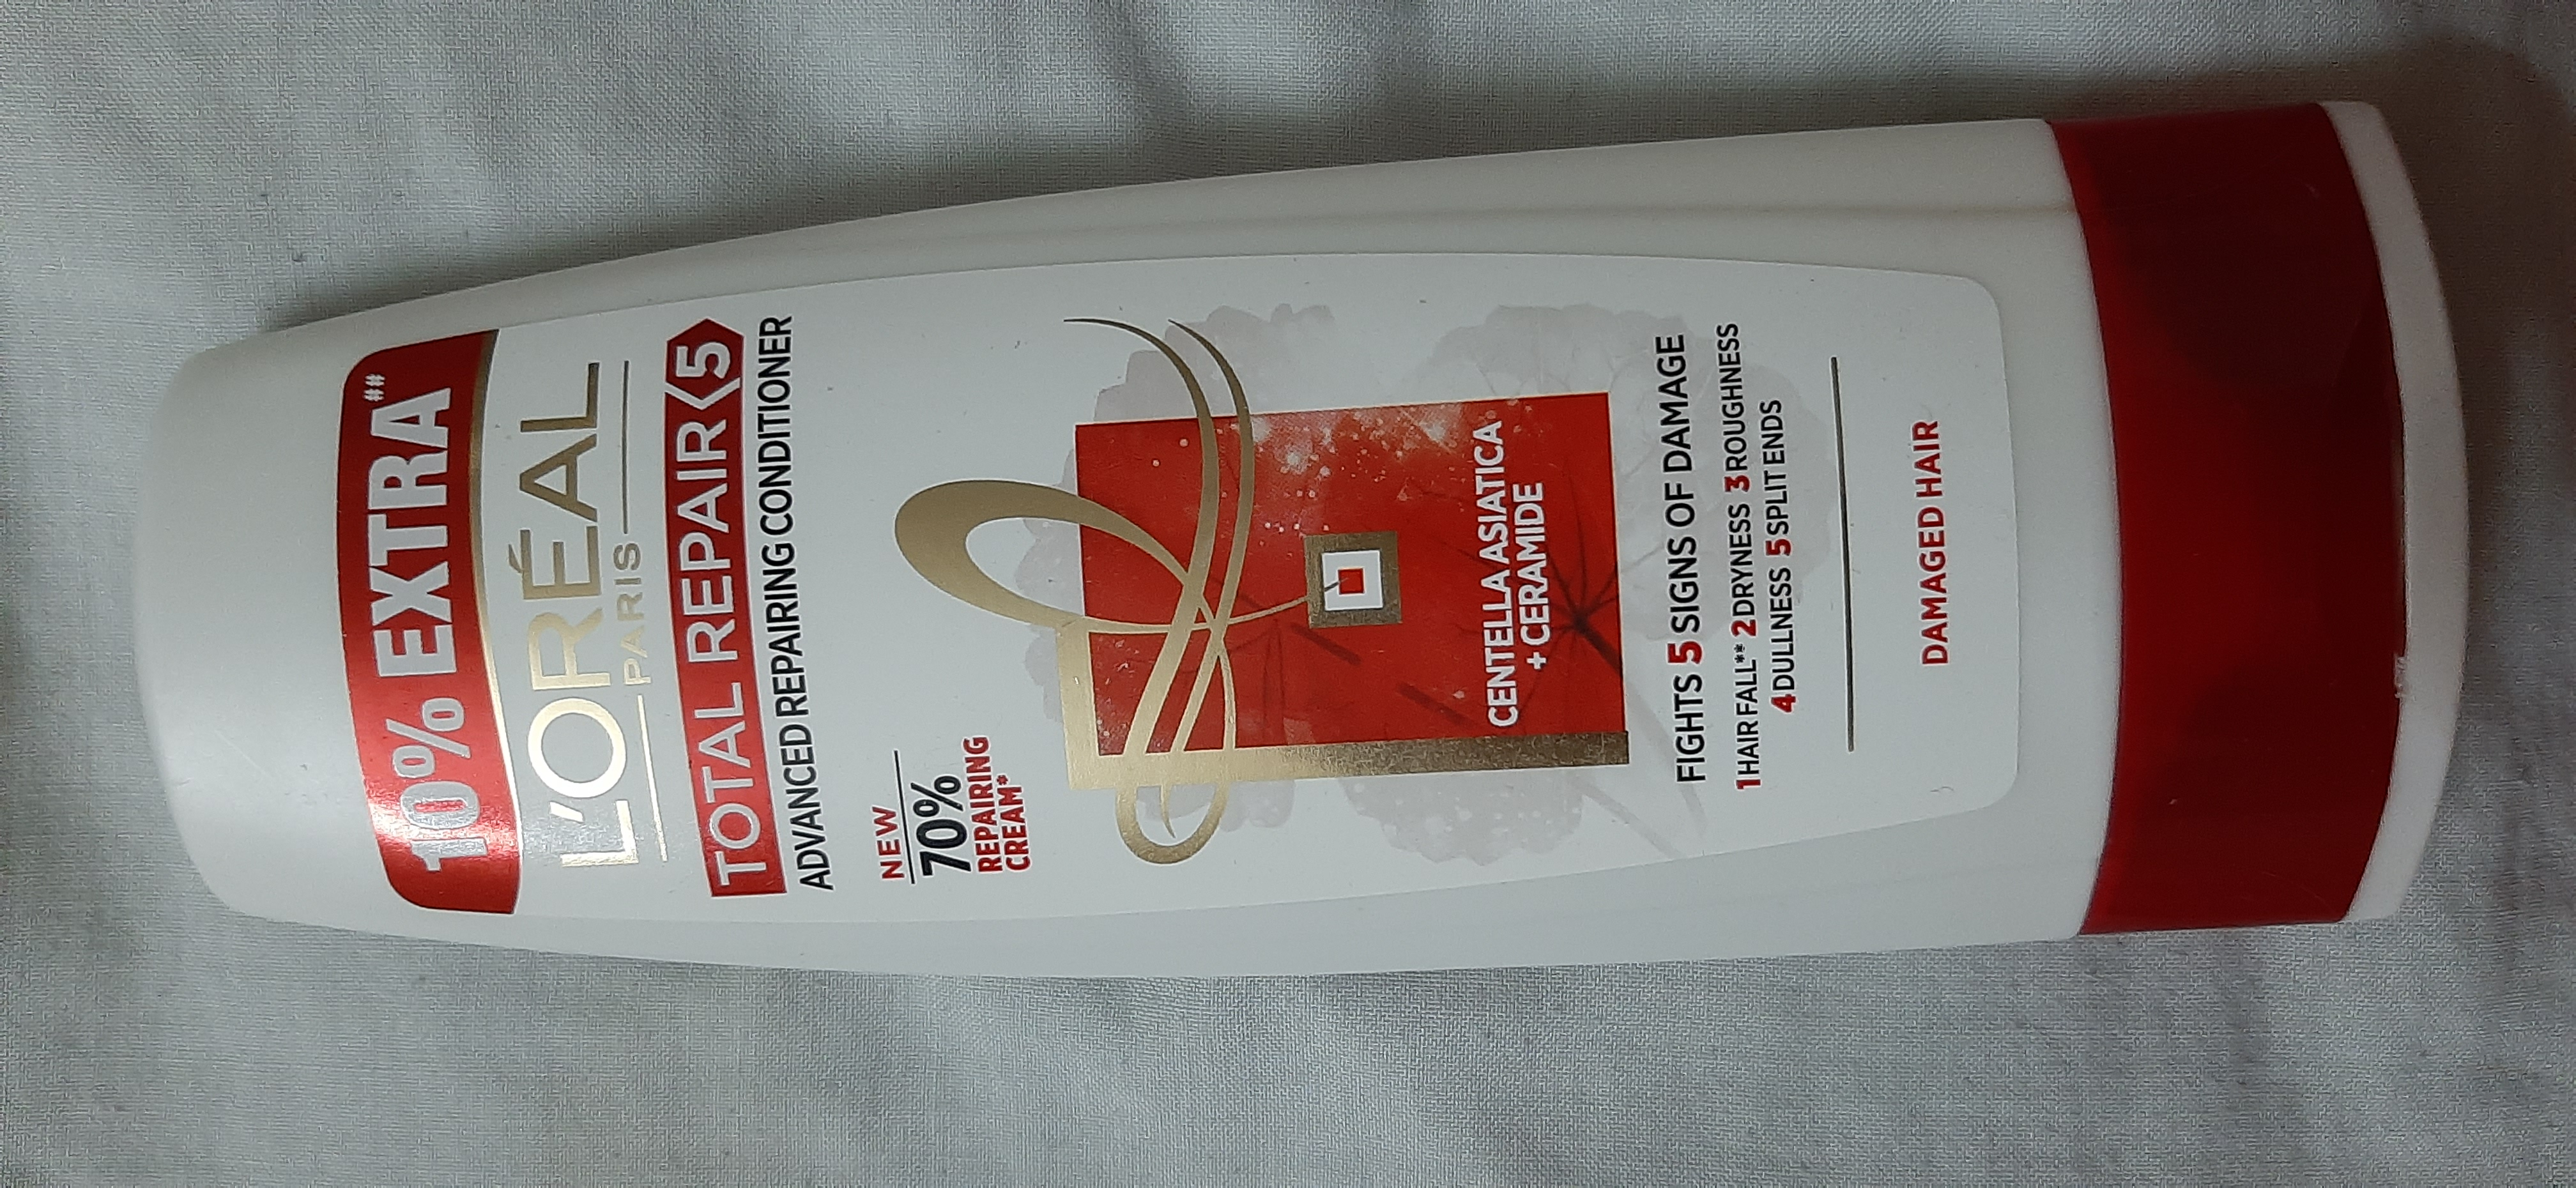 L'Oreal Paris Total Repair 5 Conditioner-Loreal conditioner review-By samira_haider-2